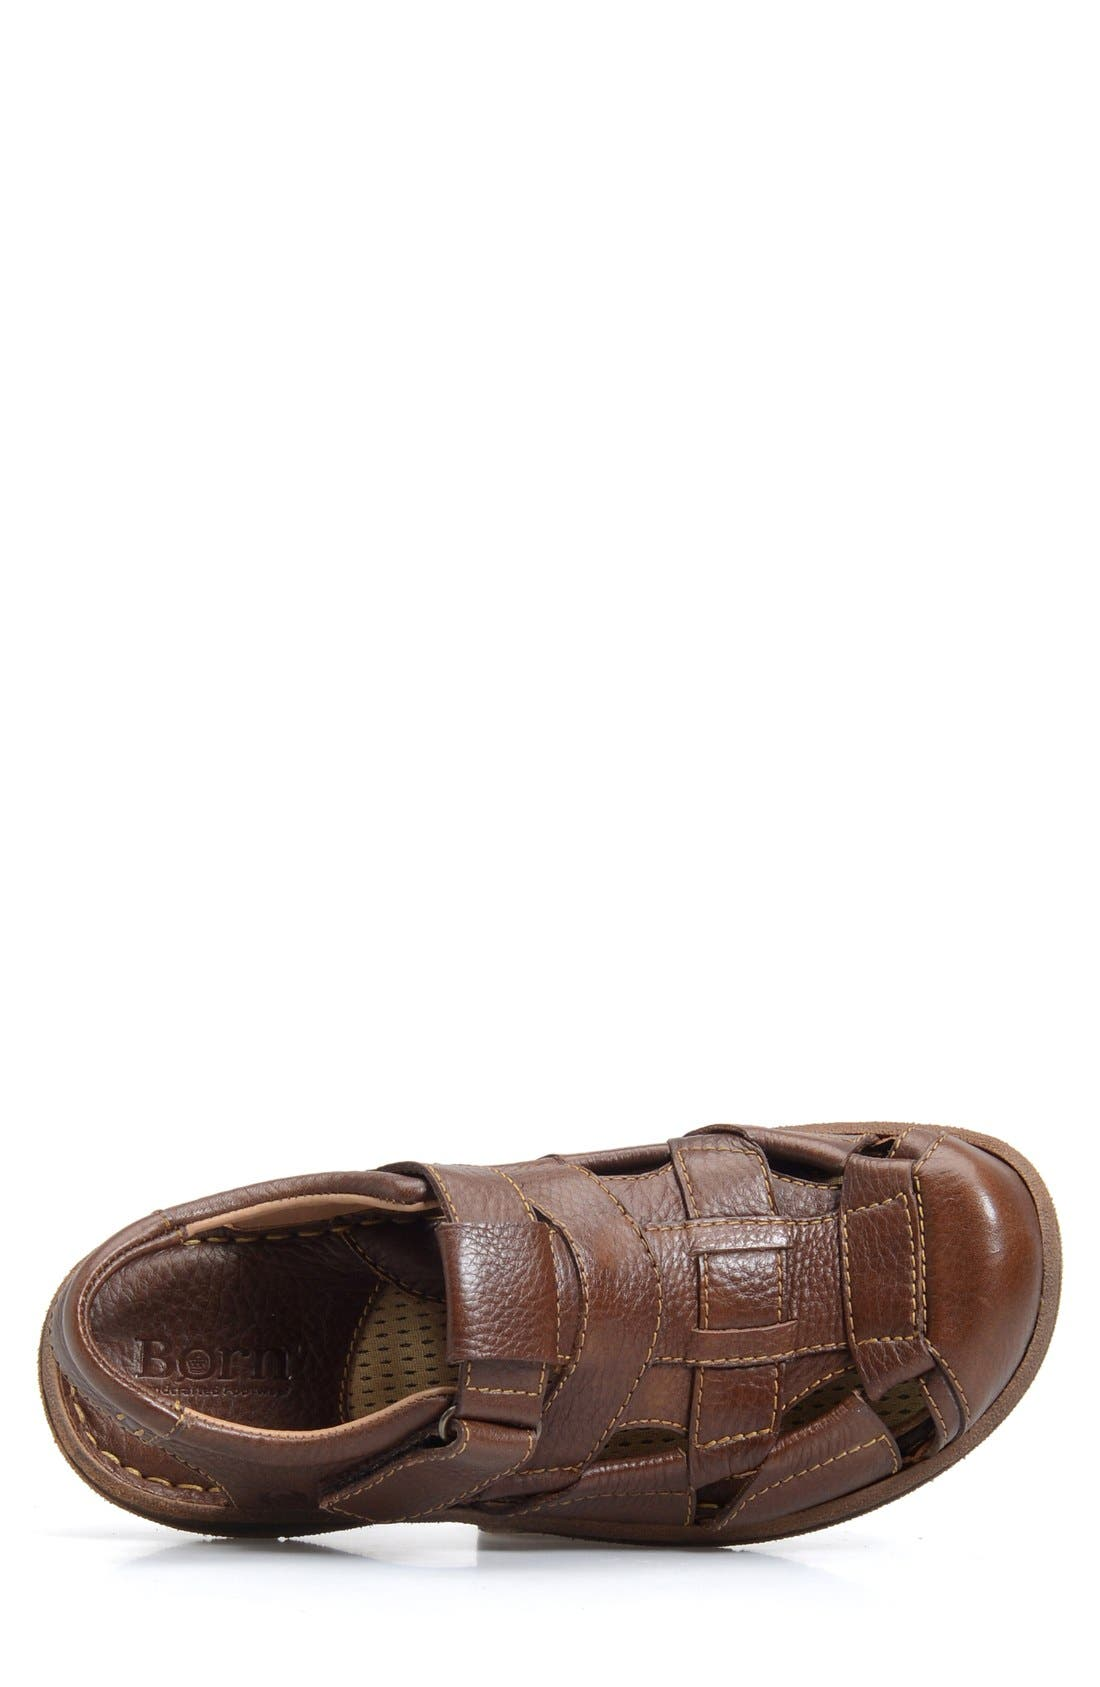 'Cabot II' Sandal,                             Alternate thumbnail 3, color,                             Brown Leather